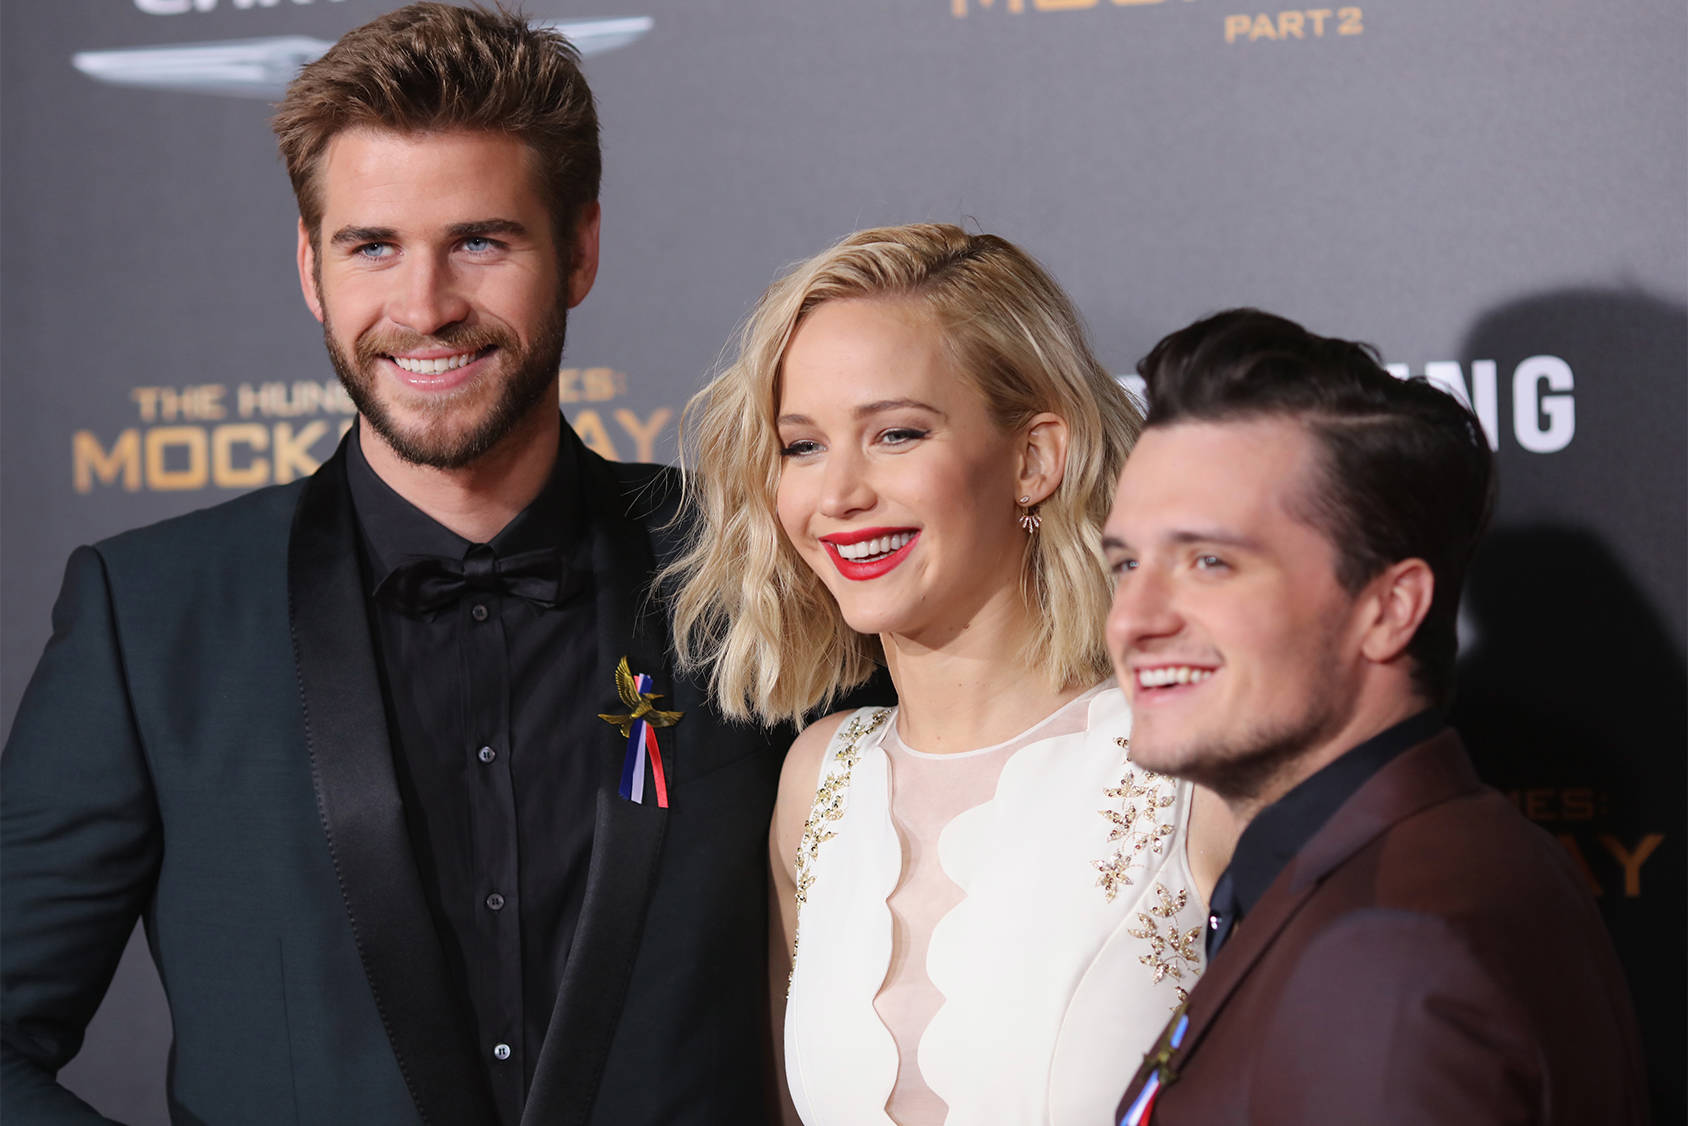 Liam Hemsworth, Jennifer Lawrence and Josh Hutcherson from The Hunger Games, Getty Images.